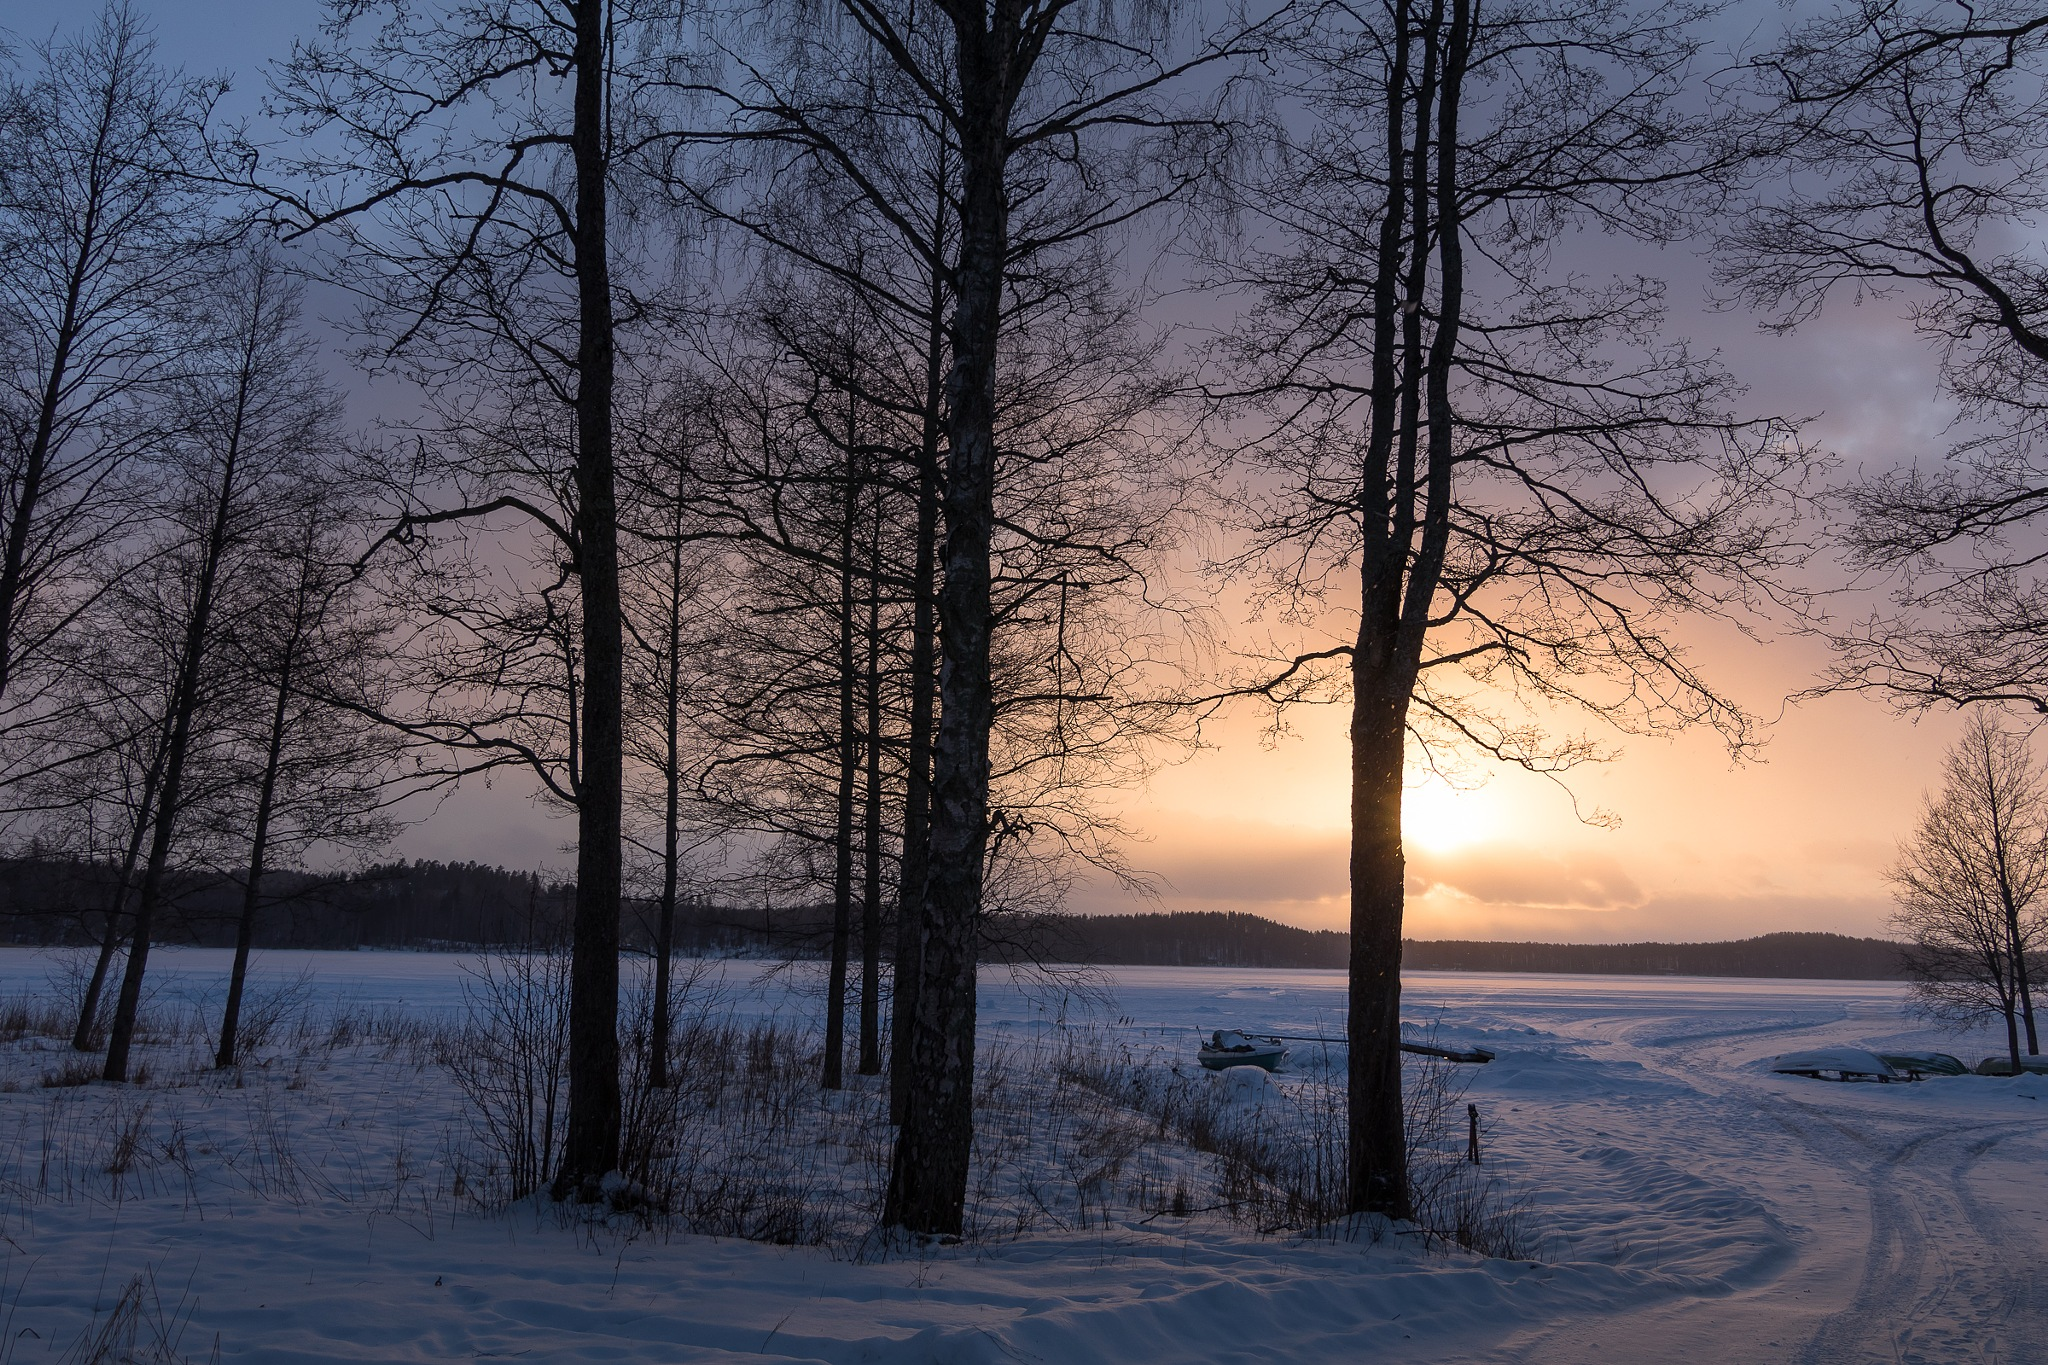 March evening by Anne_V